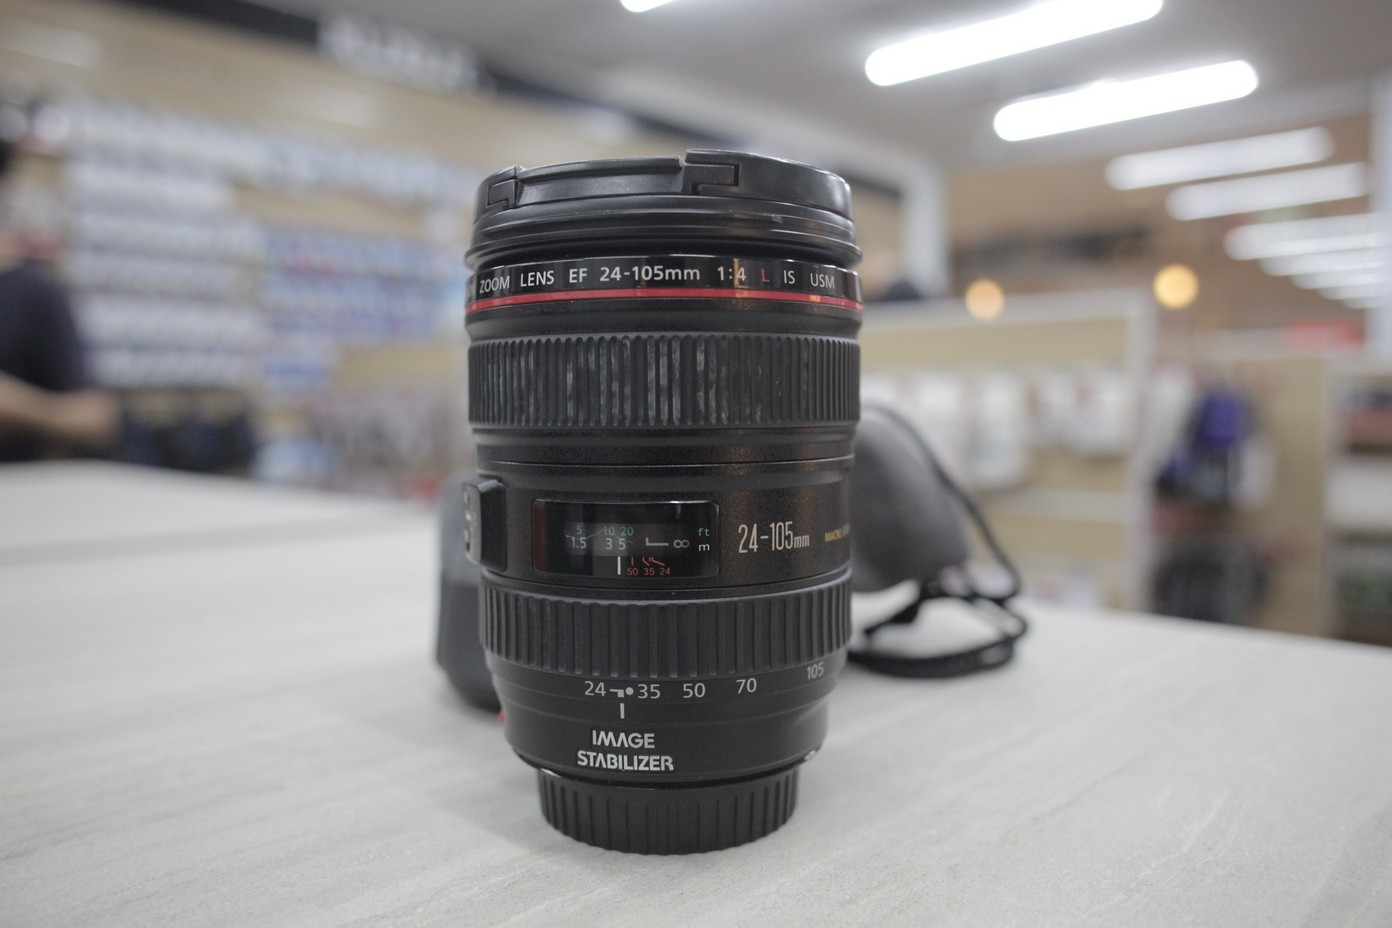 Used - Canon EF 24-105mm F4L IS USM Lens (TS-KL)